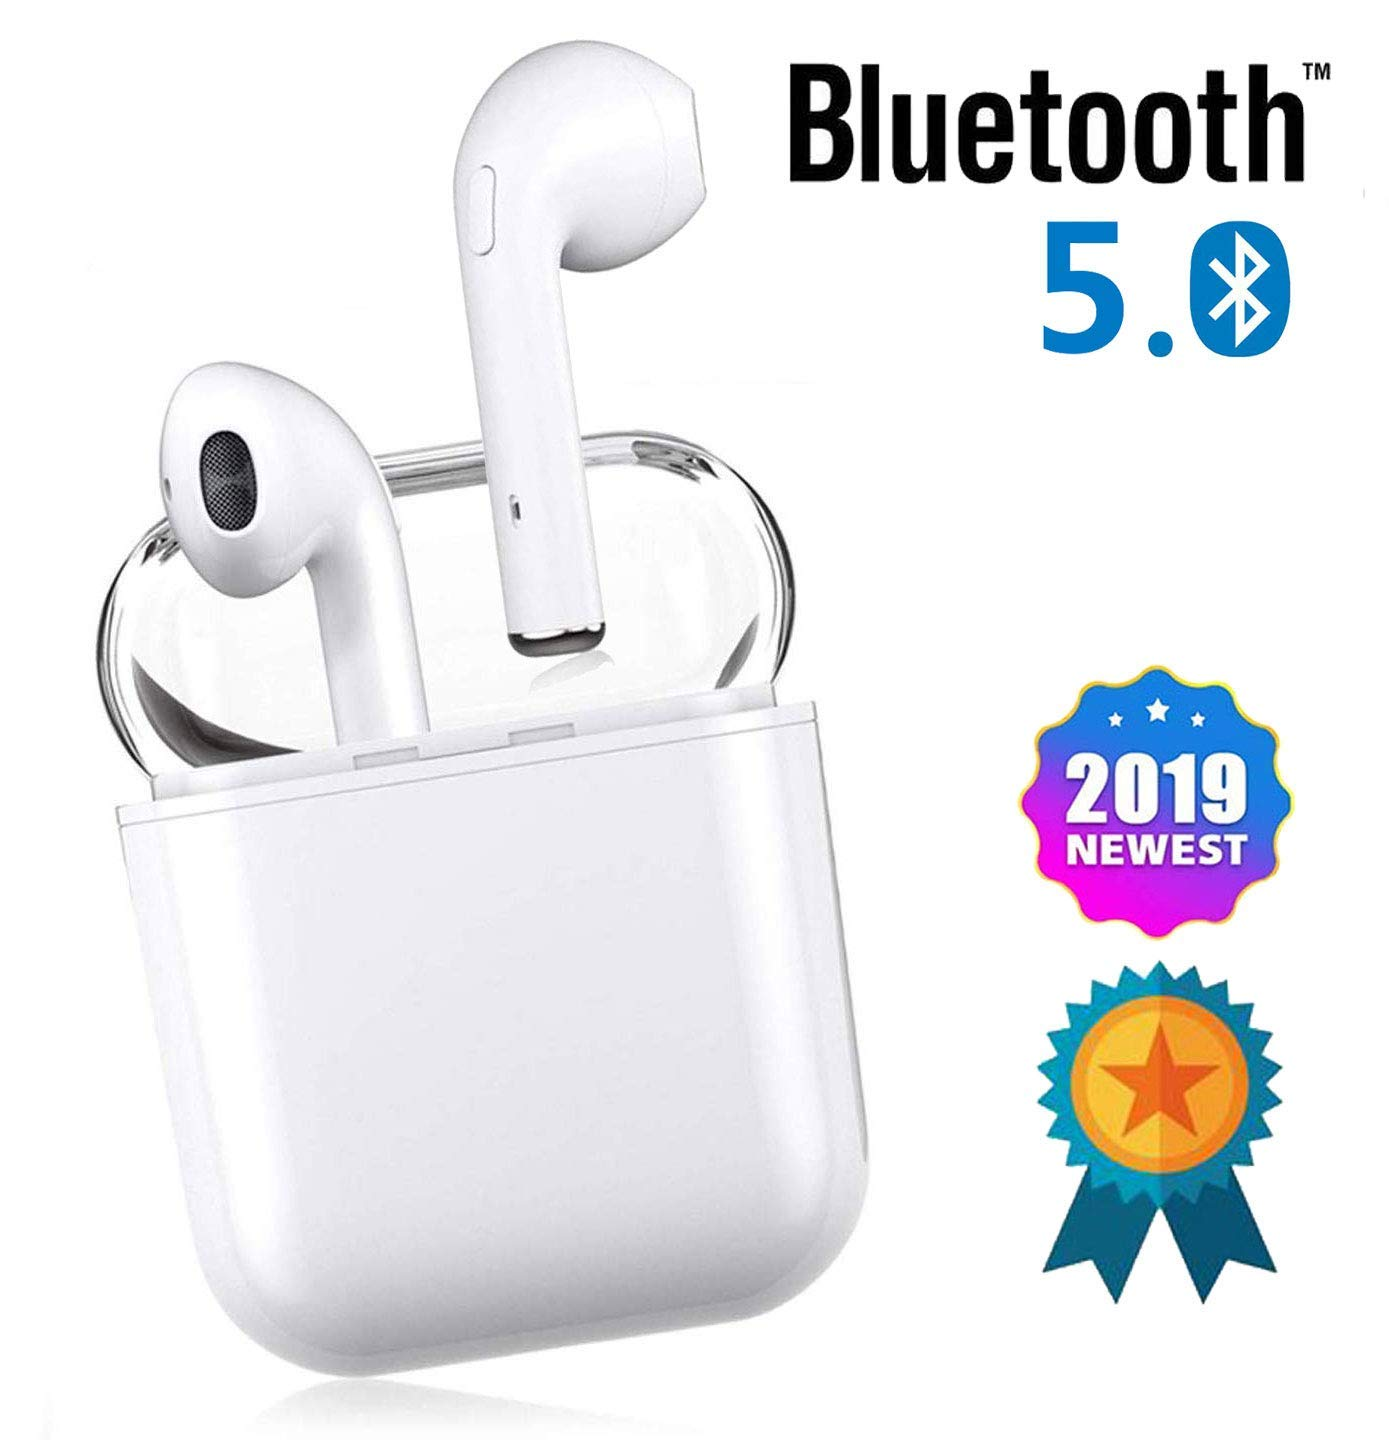 Bluetooth 5.0 Wireless Earbuds with 24Hrs Charging Case Waterproof Stereo Headphones in-Ear Built-in Mic Headset Premium Sound with Deep Bass for Sport Earphones Apple Airpod Wireless Earbud